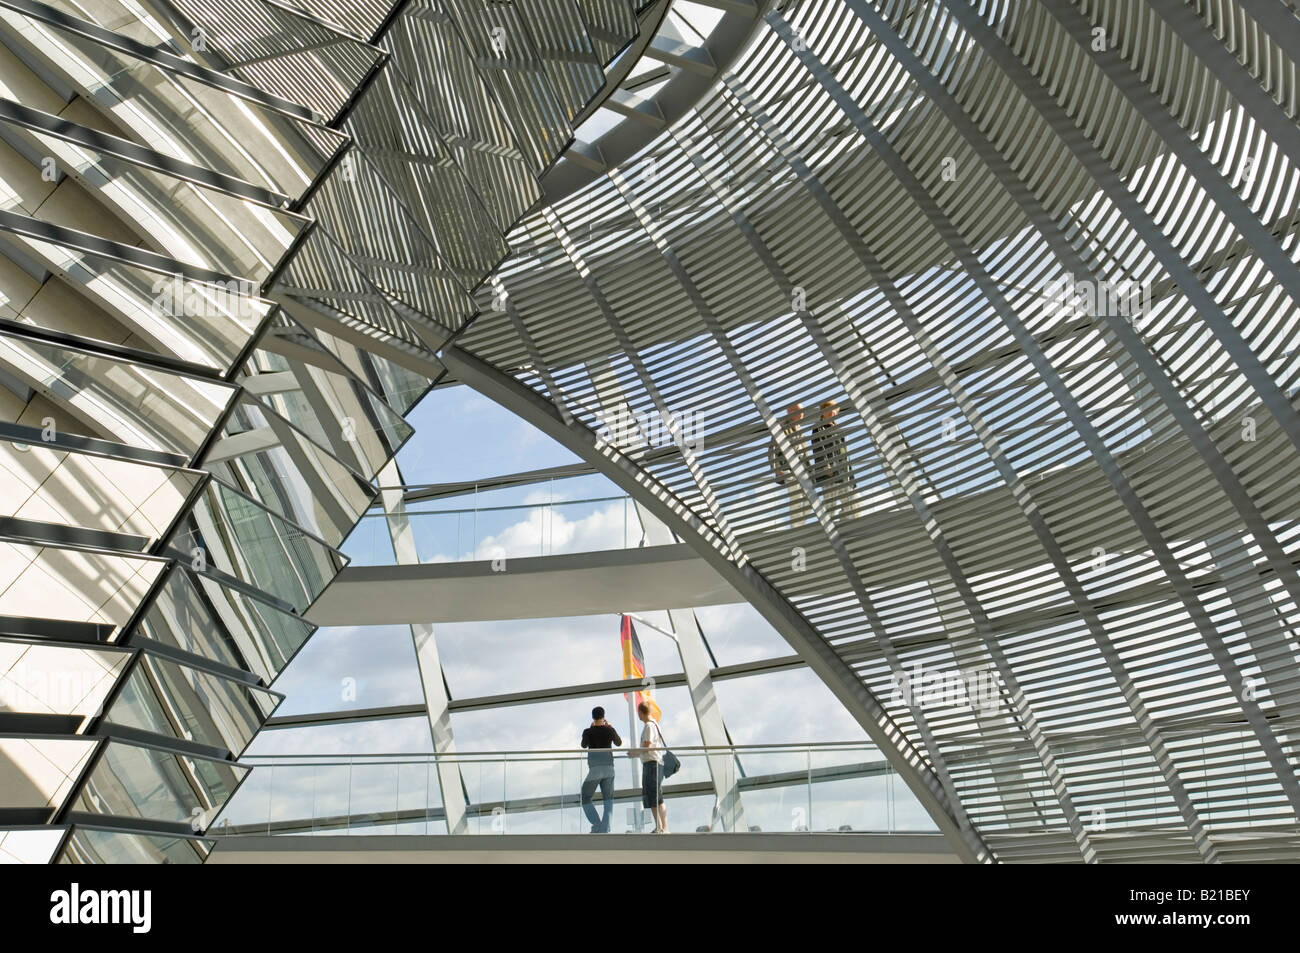 A view of tourists on the walkway inside the dome on top of the Reichstag - the german parliment building. - Stock Image